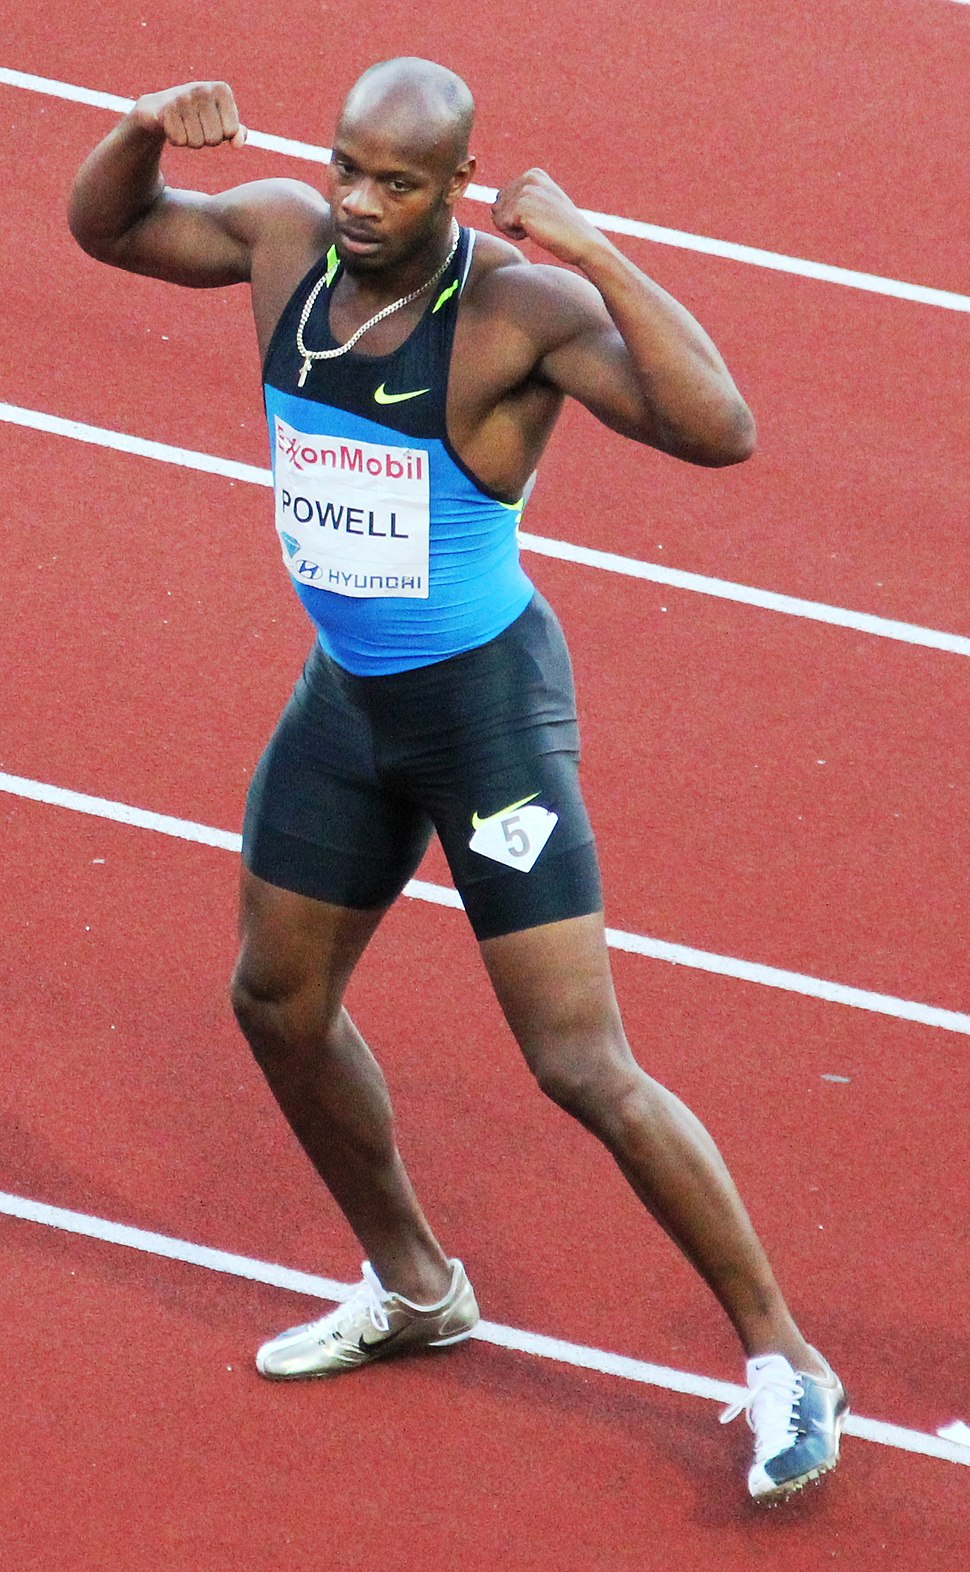 Powell 2010-06-04 Bislett Games 03